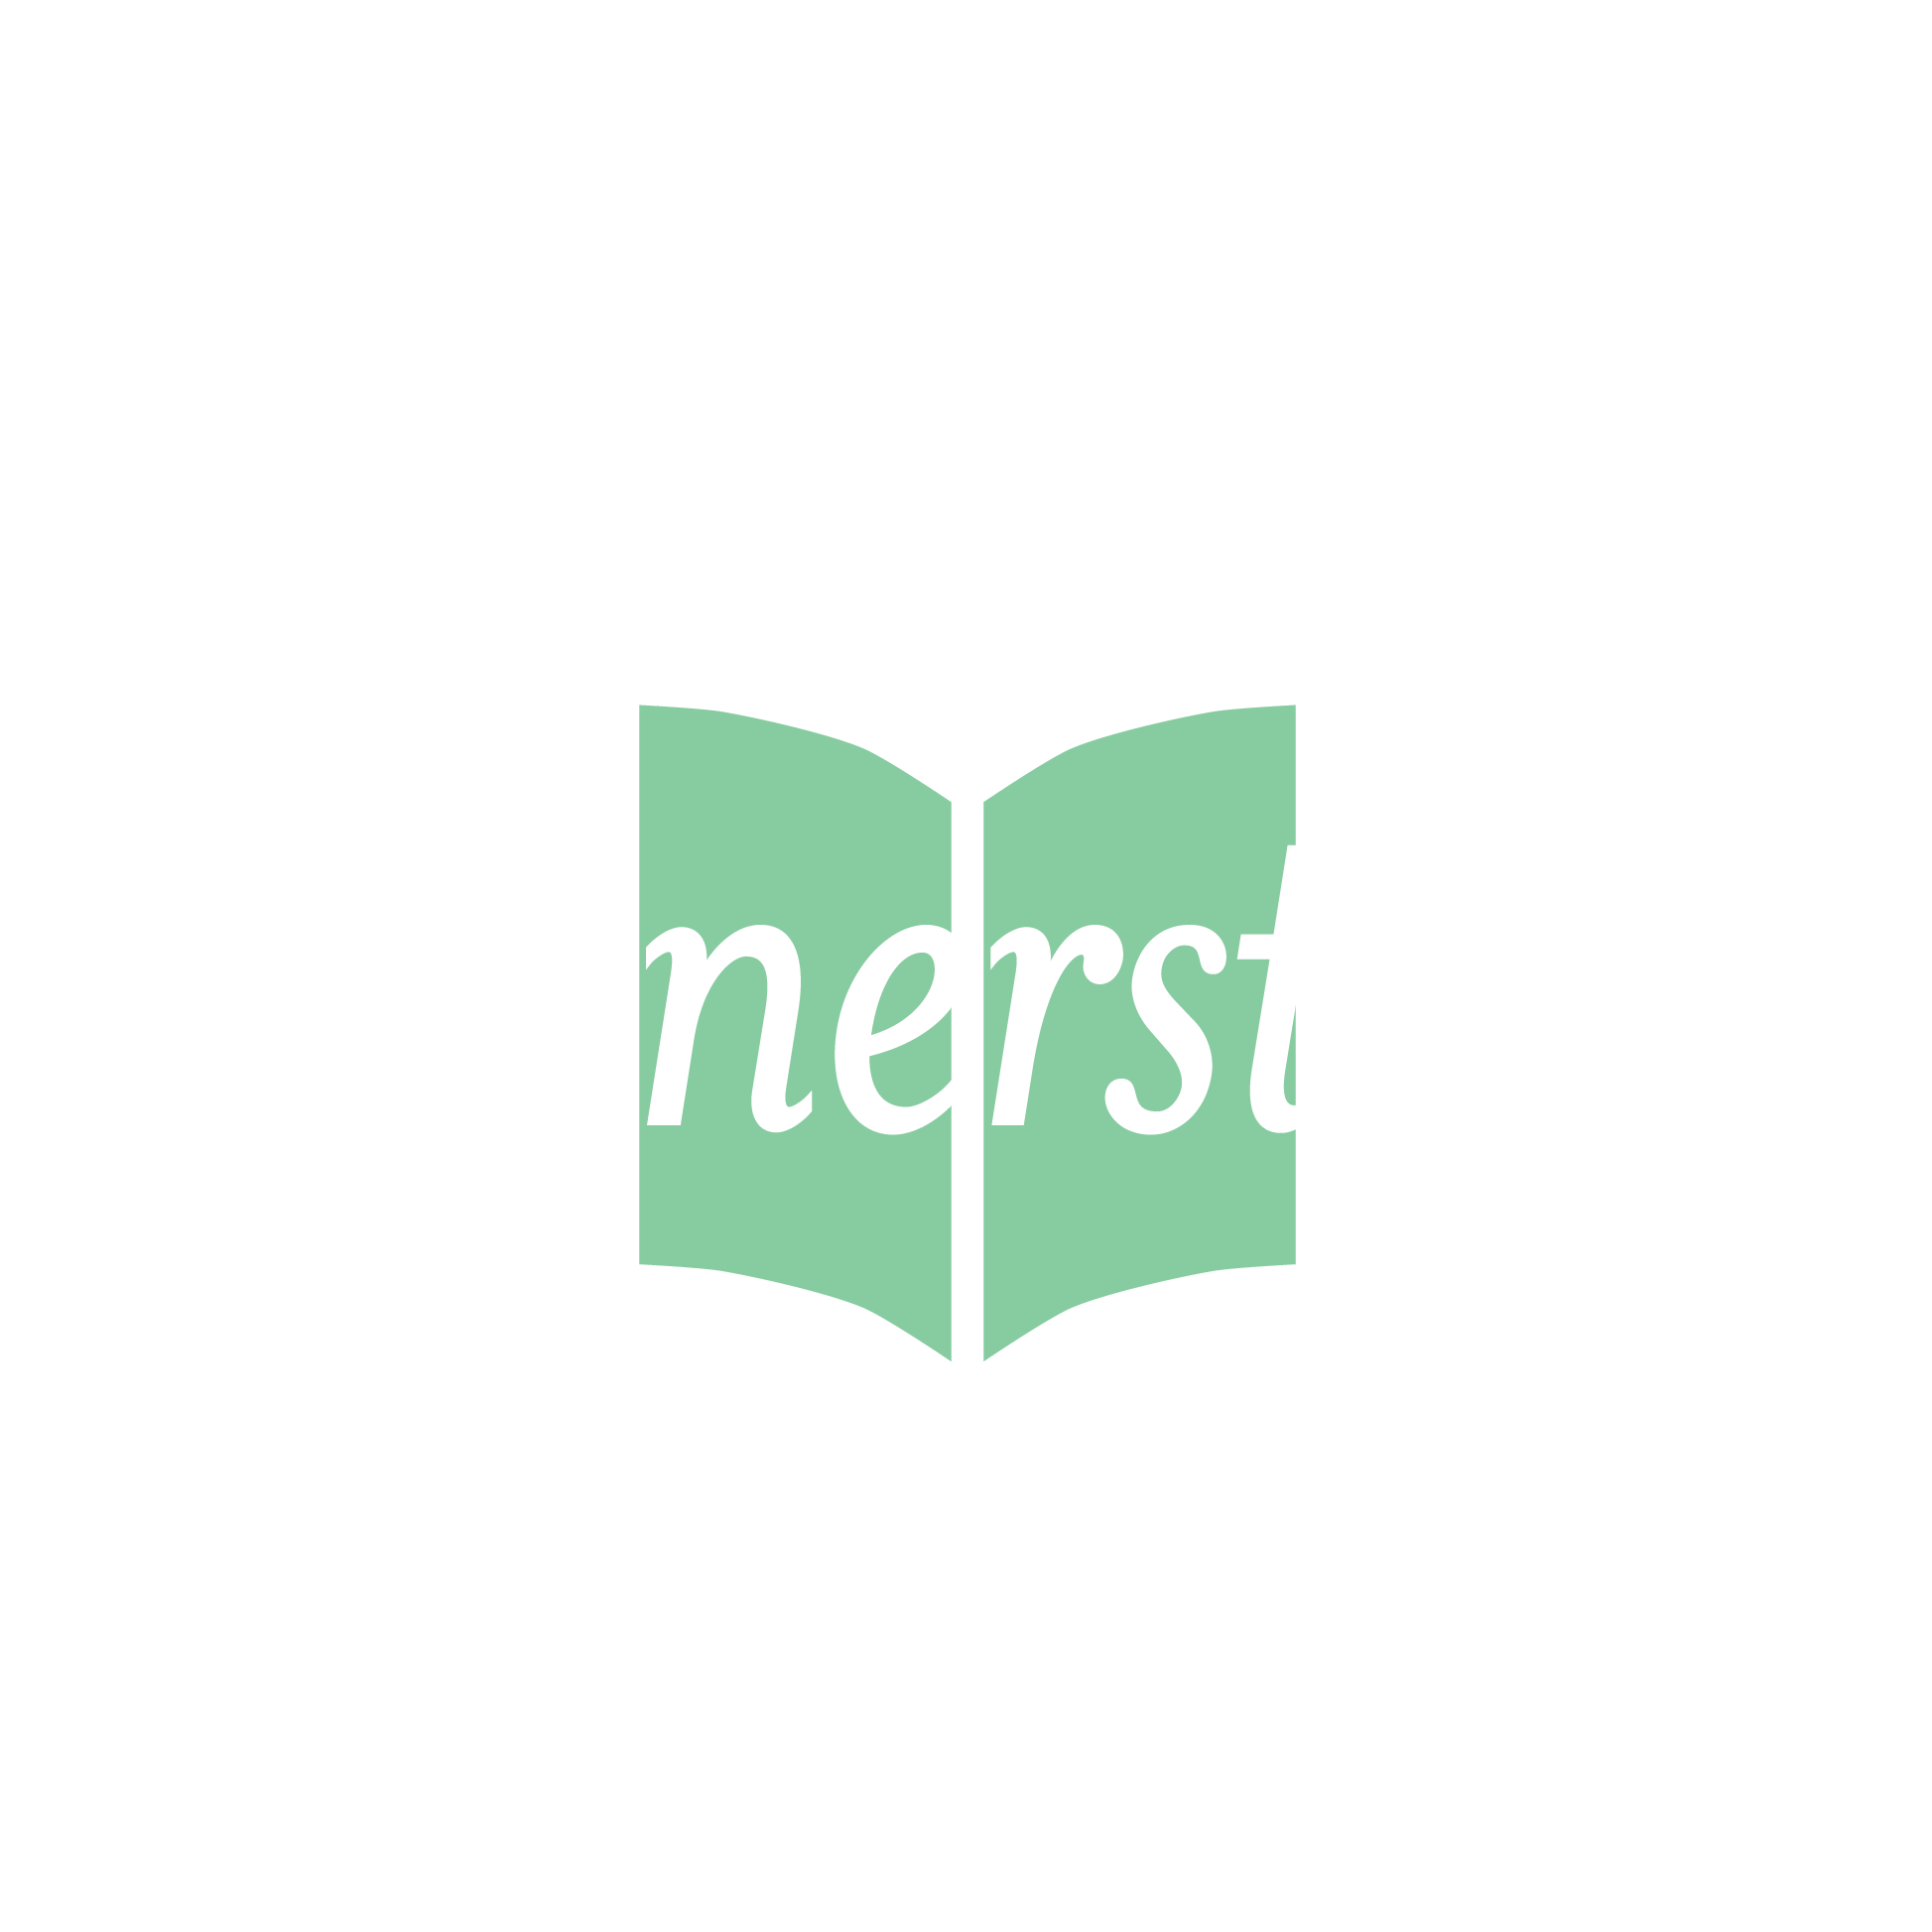 Cornerstone Baptist Church Terrell Texas